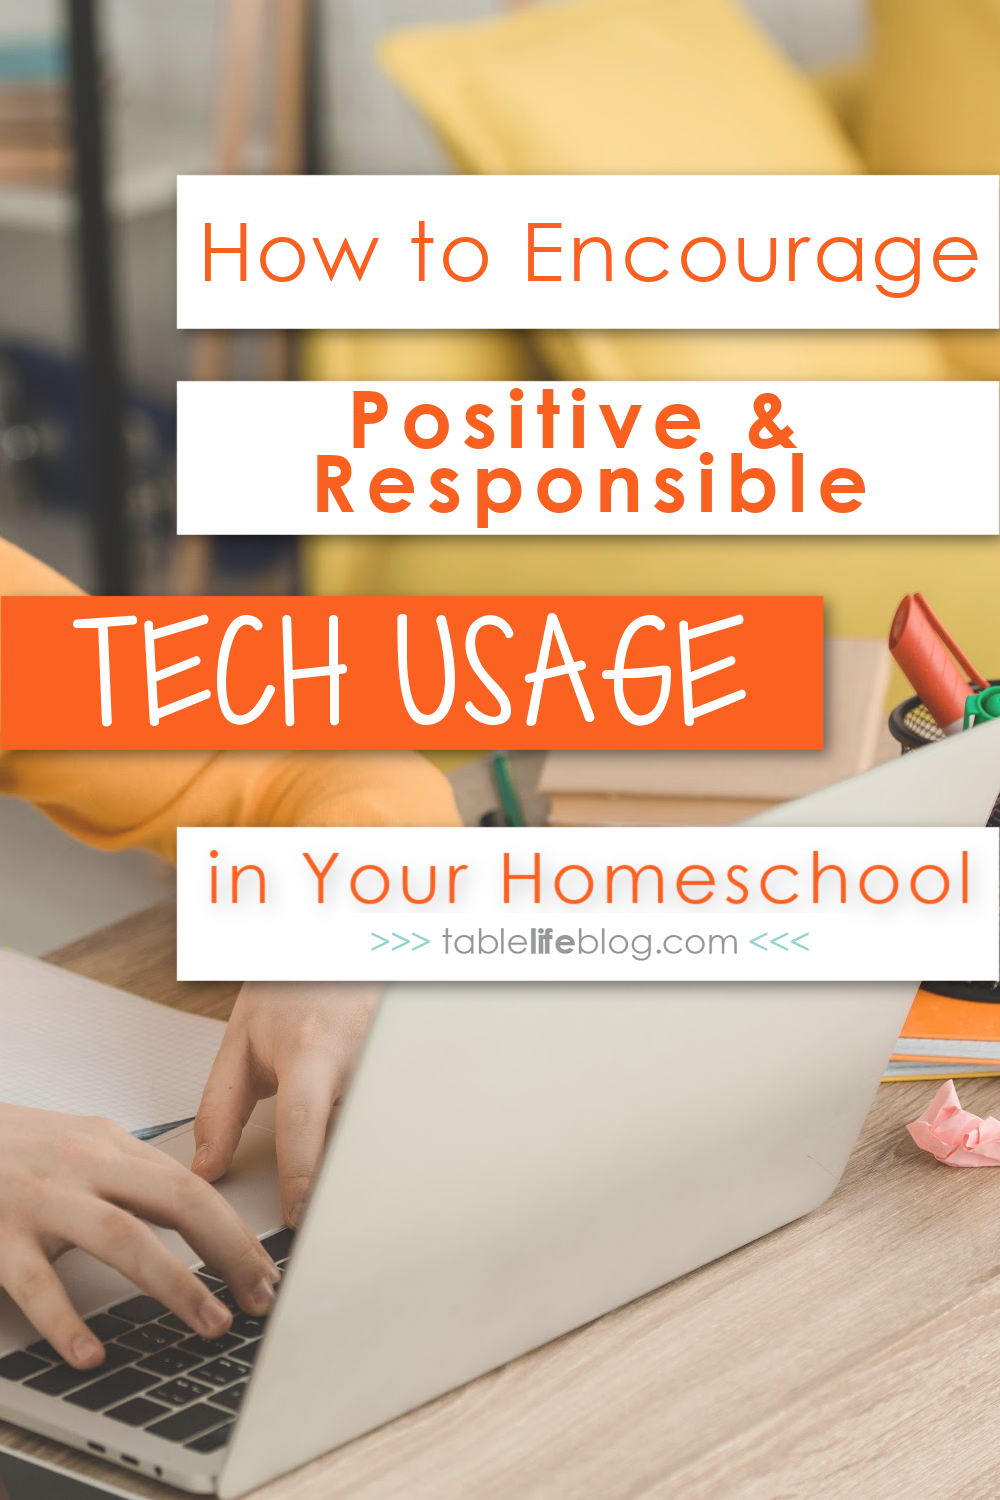 Don't be afraid to use technology in your homeschool! Instead, teach your kids they can use it responsibly to enhance their learning.